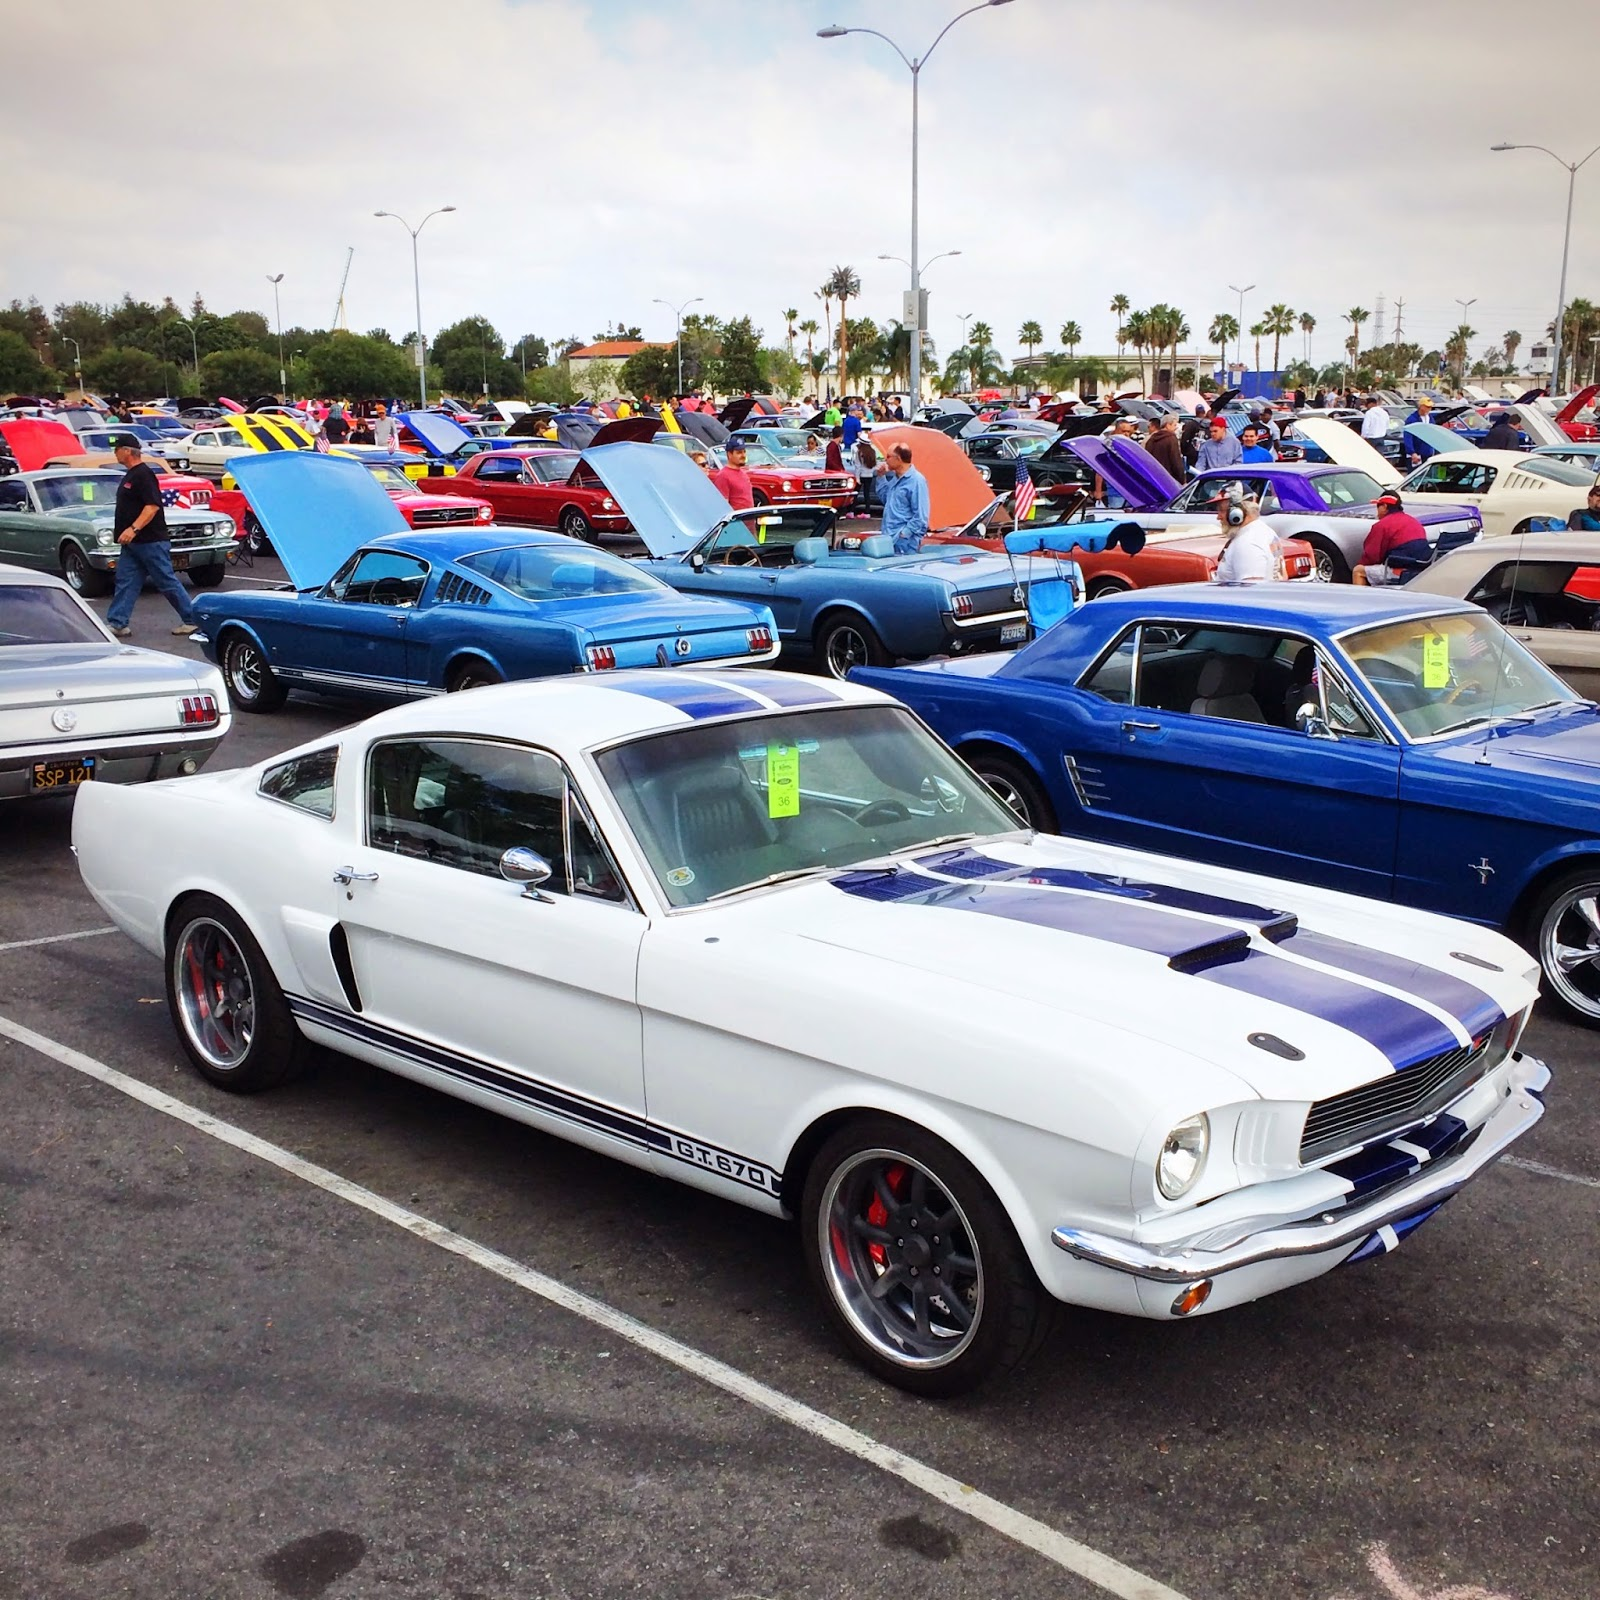 Covering Classic Cars Fabulous Fords Forever Car Show At Knotts - Classic pony car shows